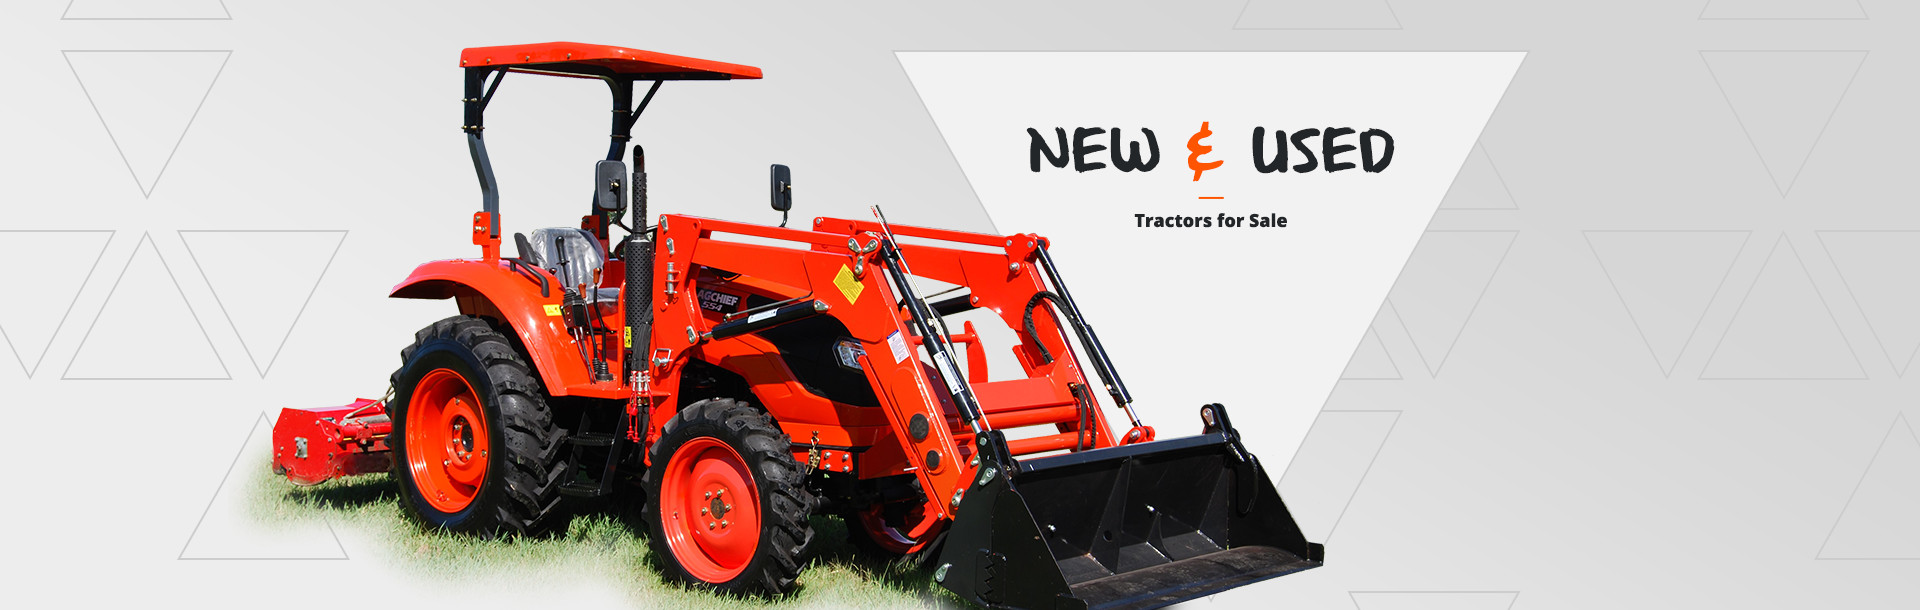 New Kubota tractors for sale